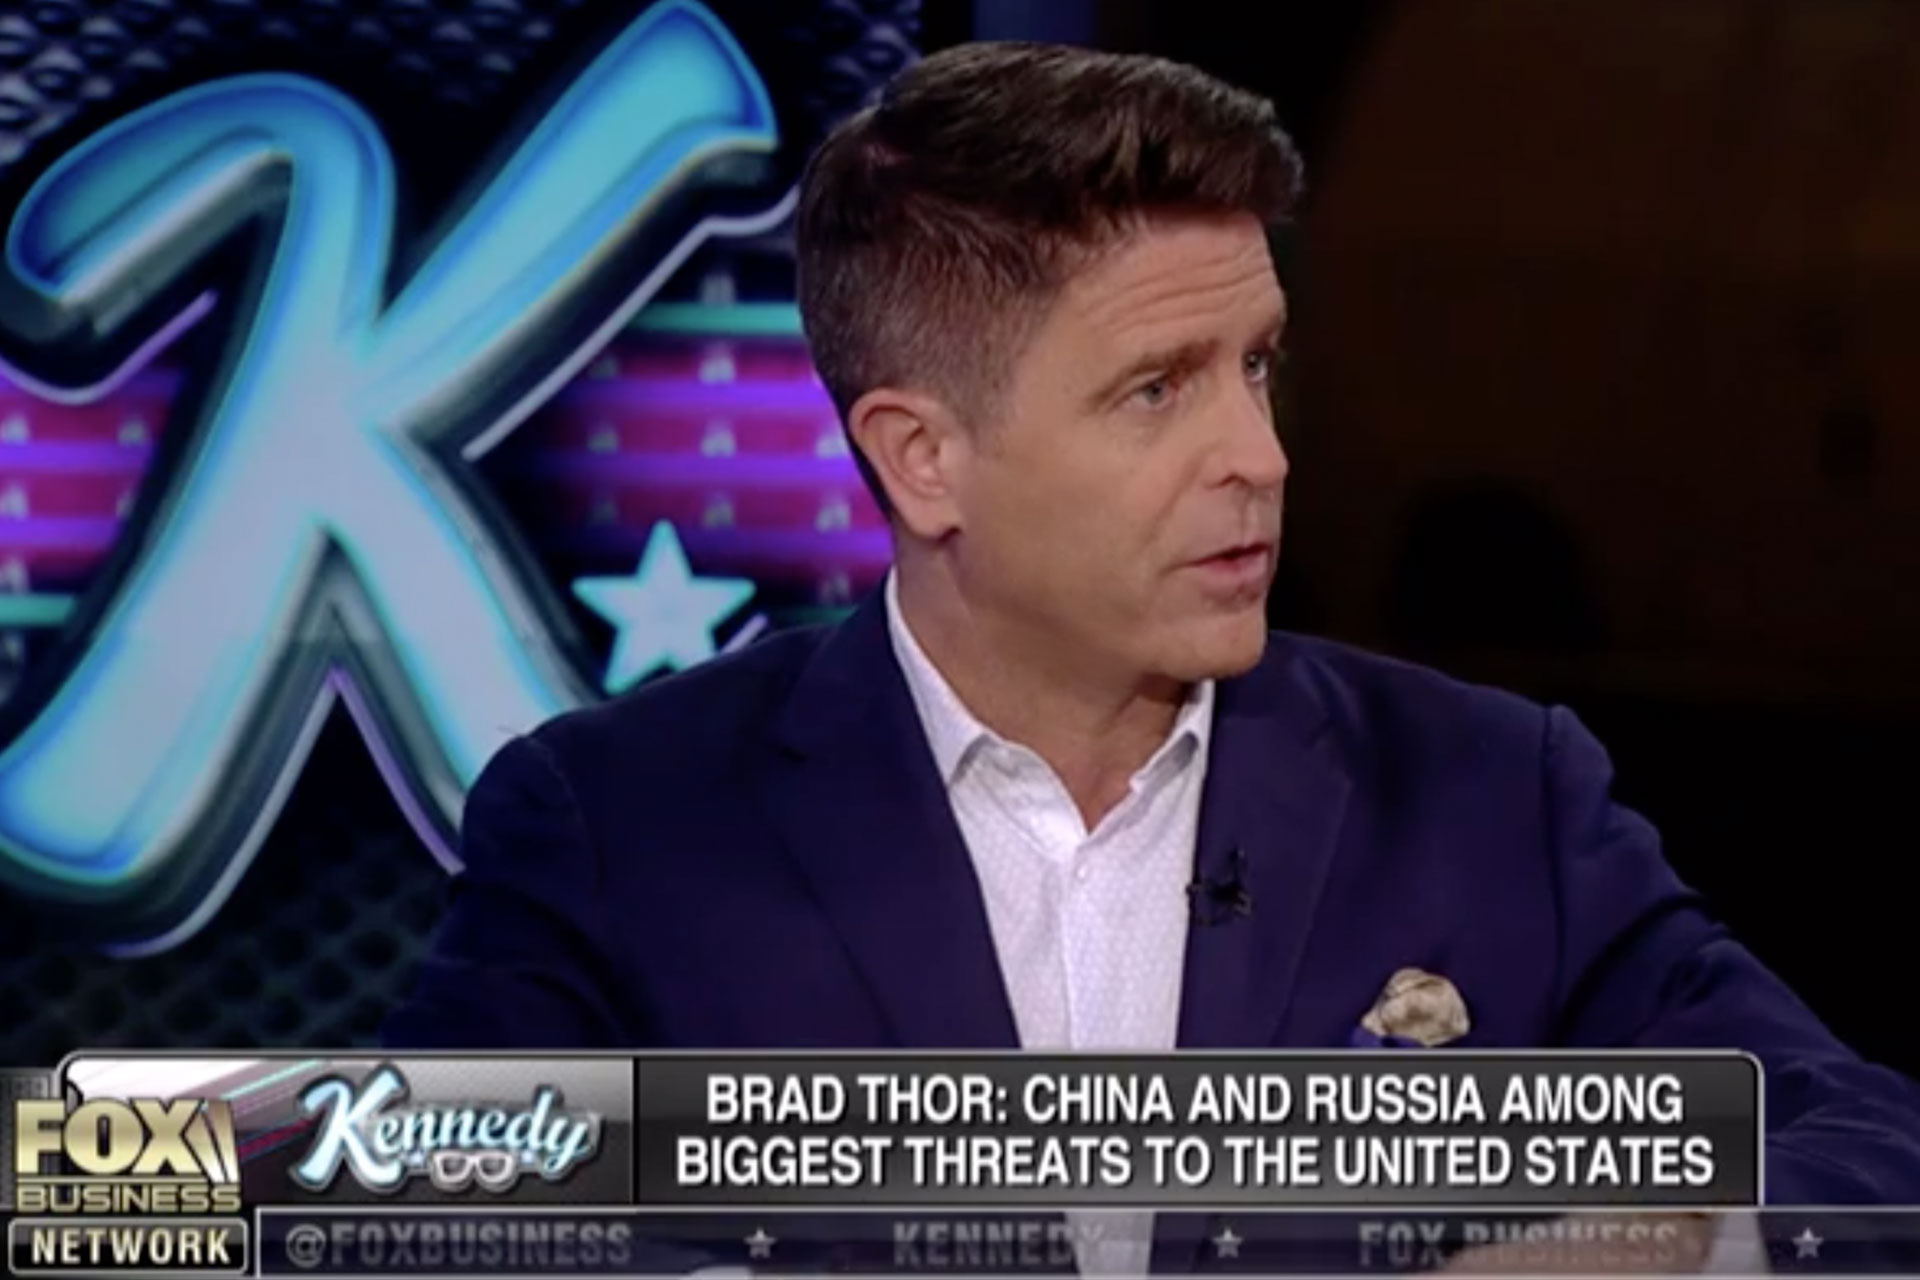 Brad discusses the greatest threat to the United States